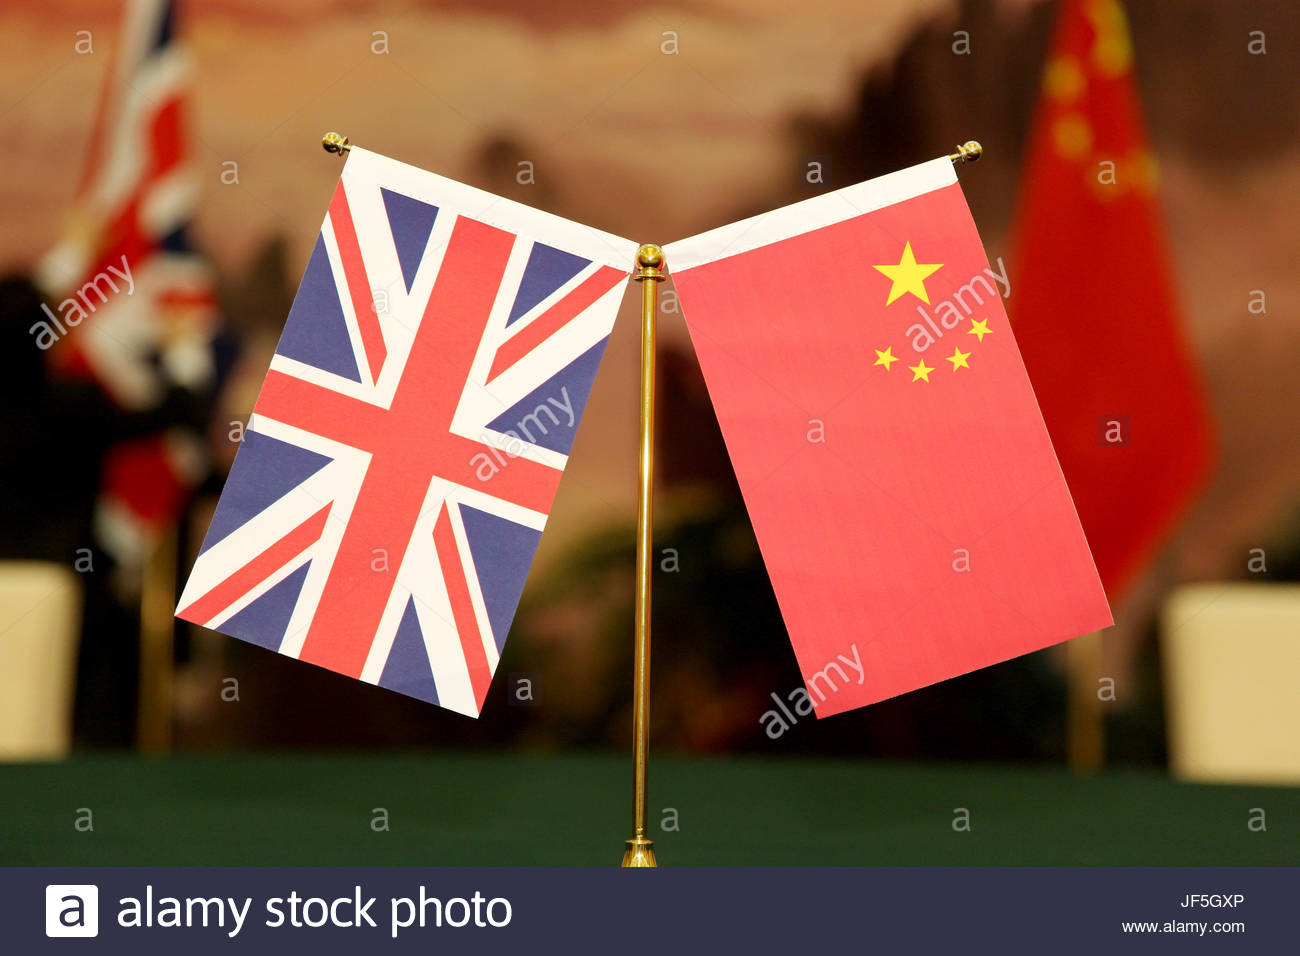 The national flags of the United Kingdom and the People's Republic of China during an official government signing - Stock Image